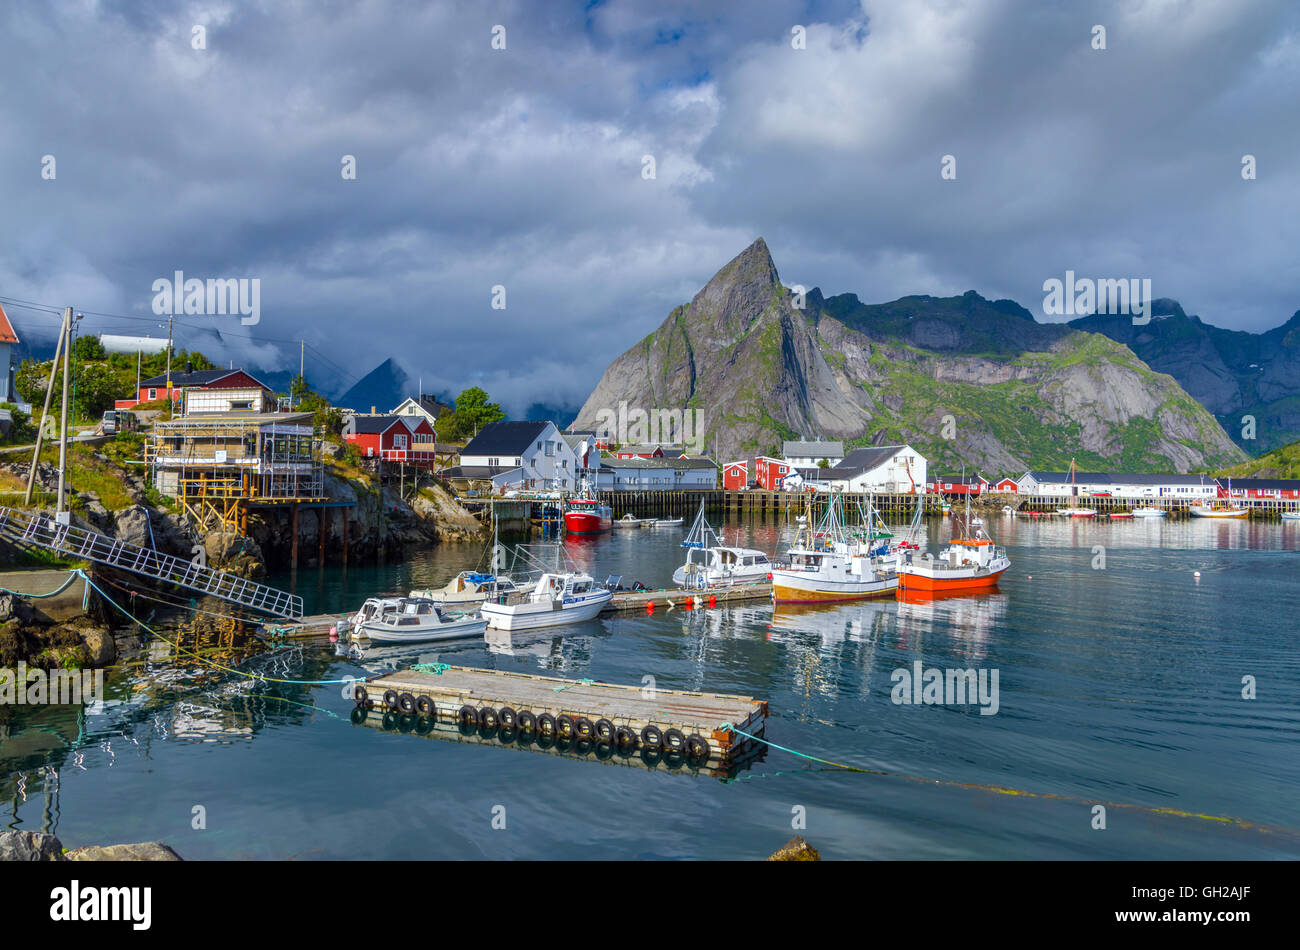 Reine, Lofoten Islands with sea and surrounding mountains - Stock Image